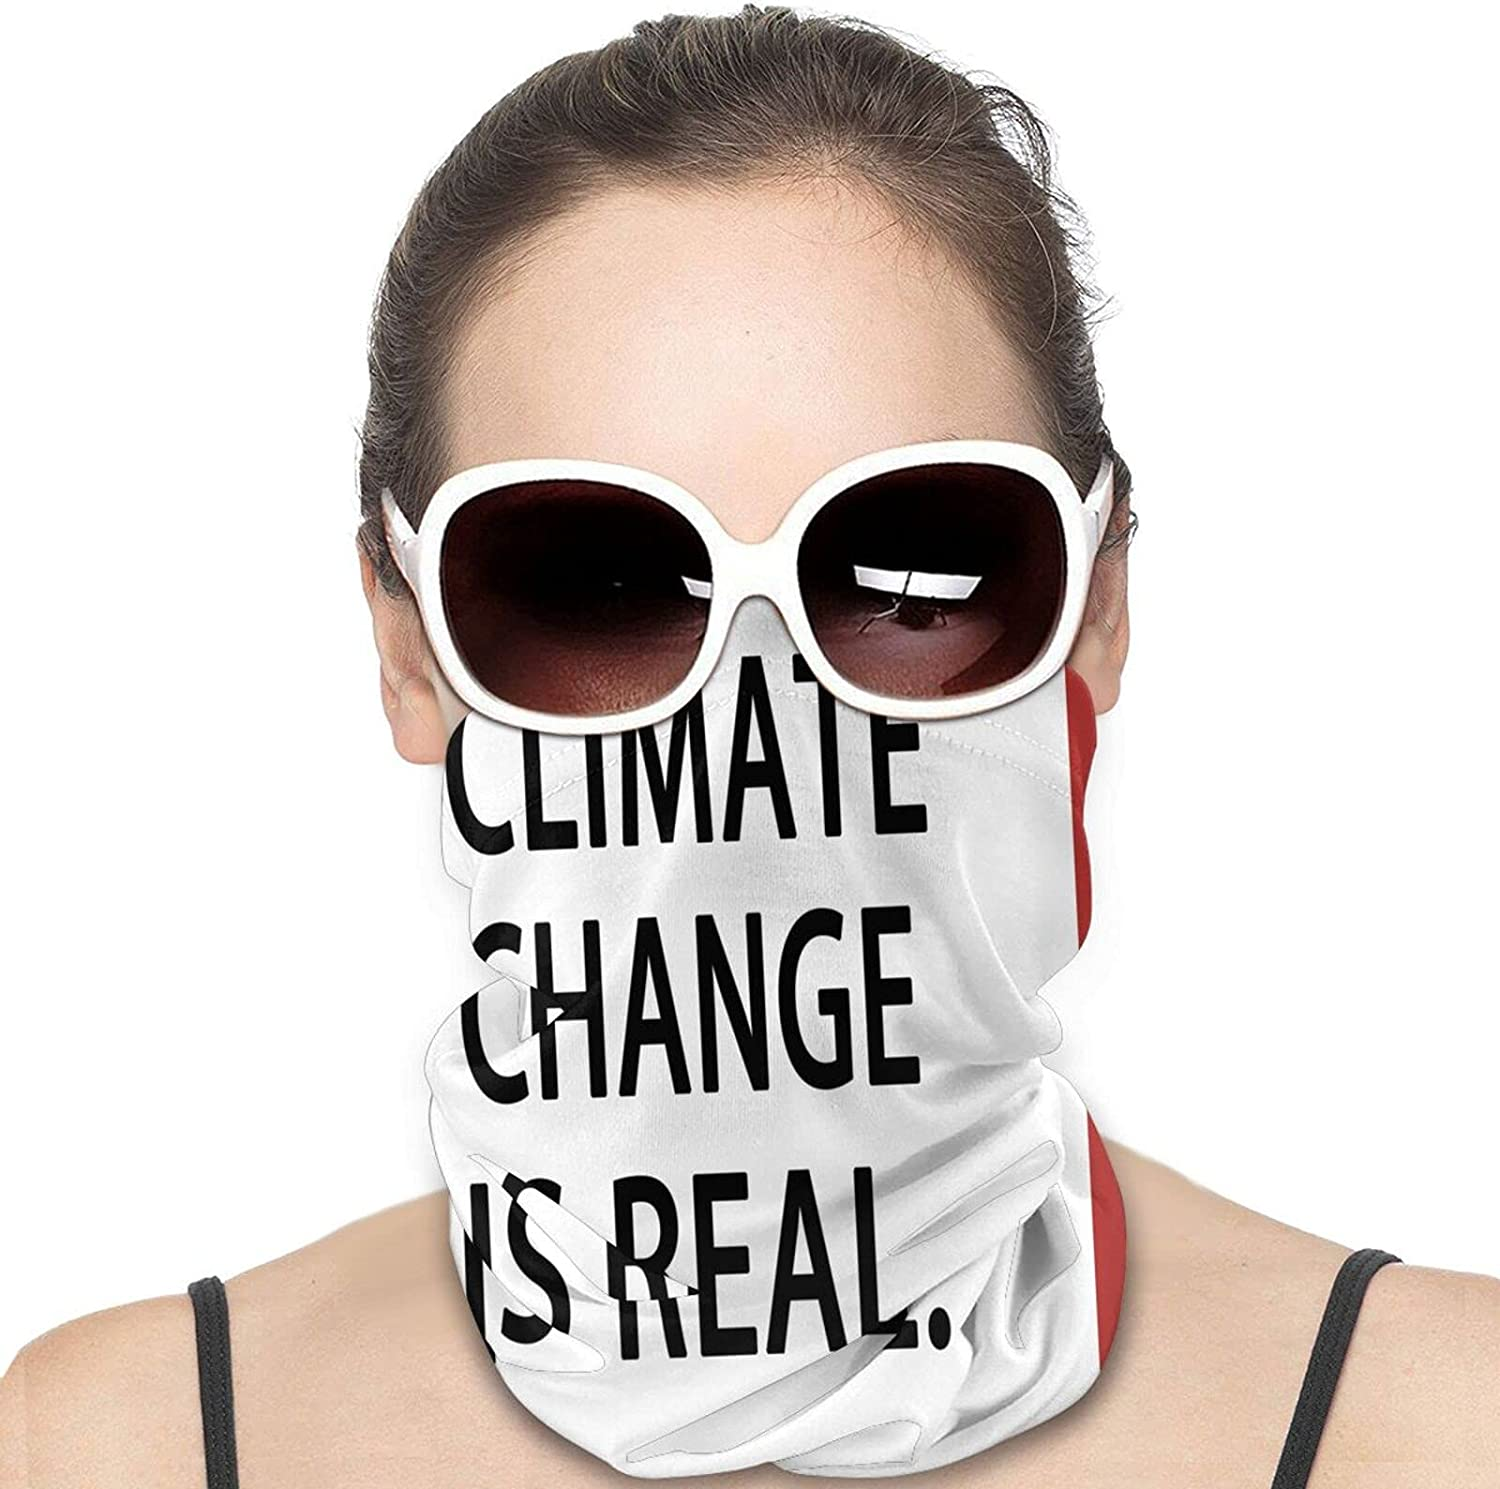 Climate Change Is Real Round Neck Gaiter Bandnas Face Cover Uv Protection Prevent bask in Ice Scarf Headbands Perfect for Motorcycle Cycling Running Festival Raves Outdoors